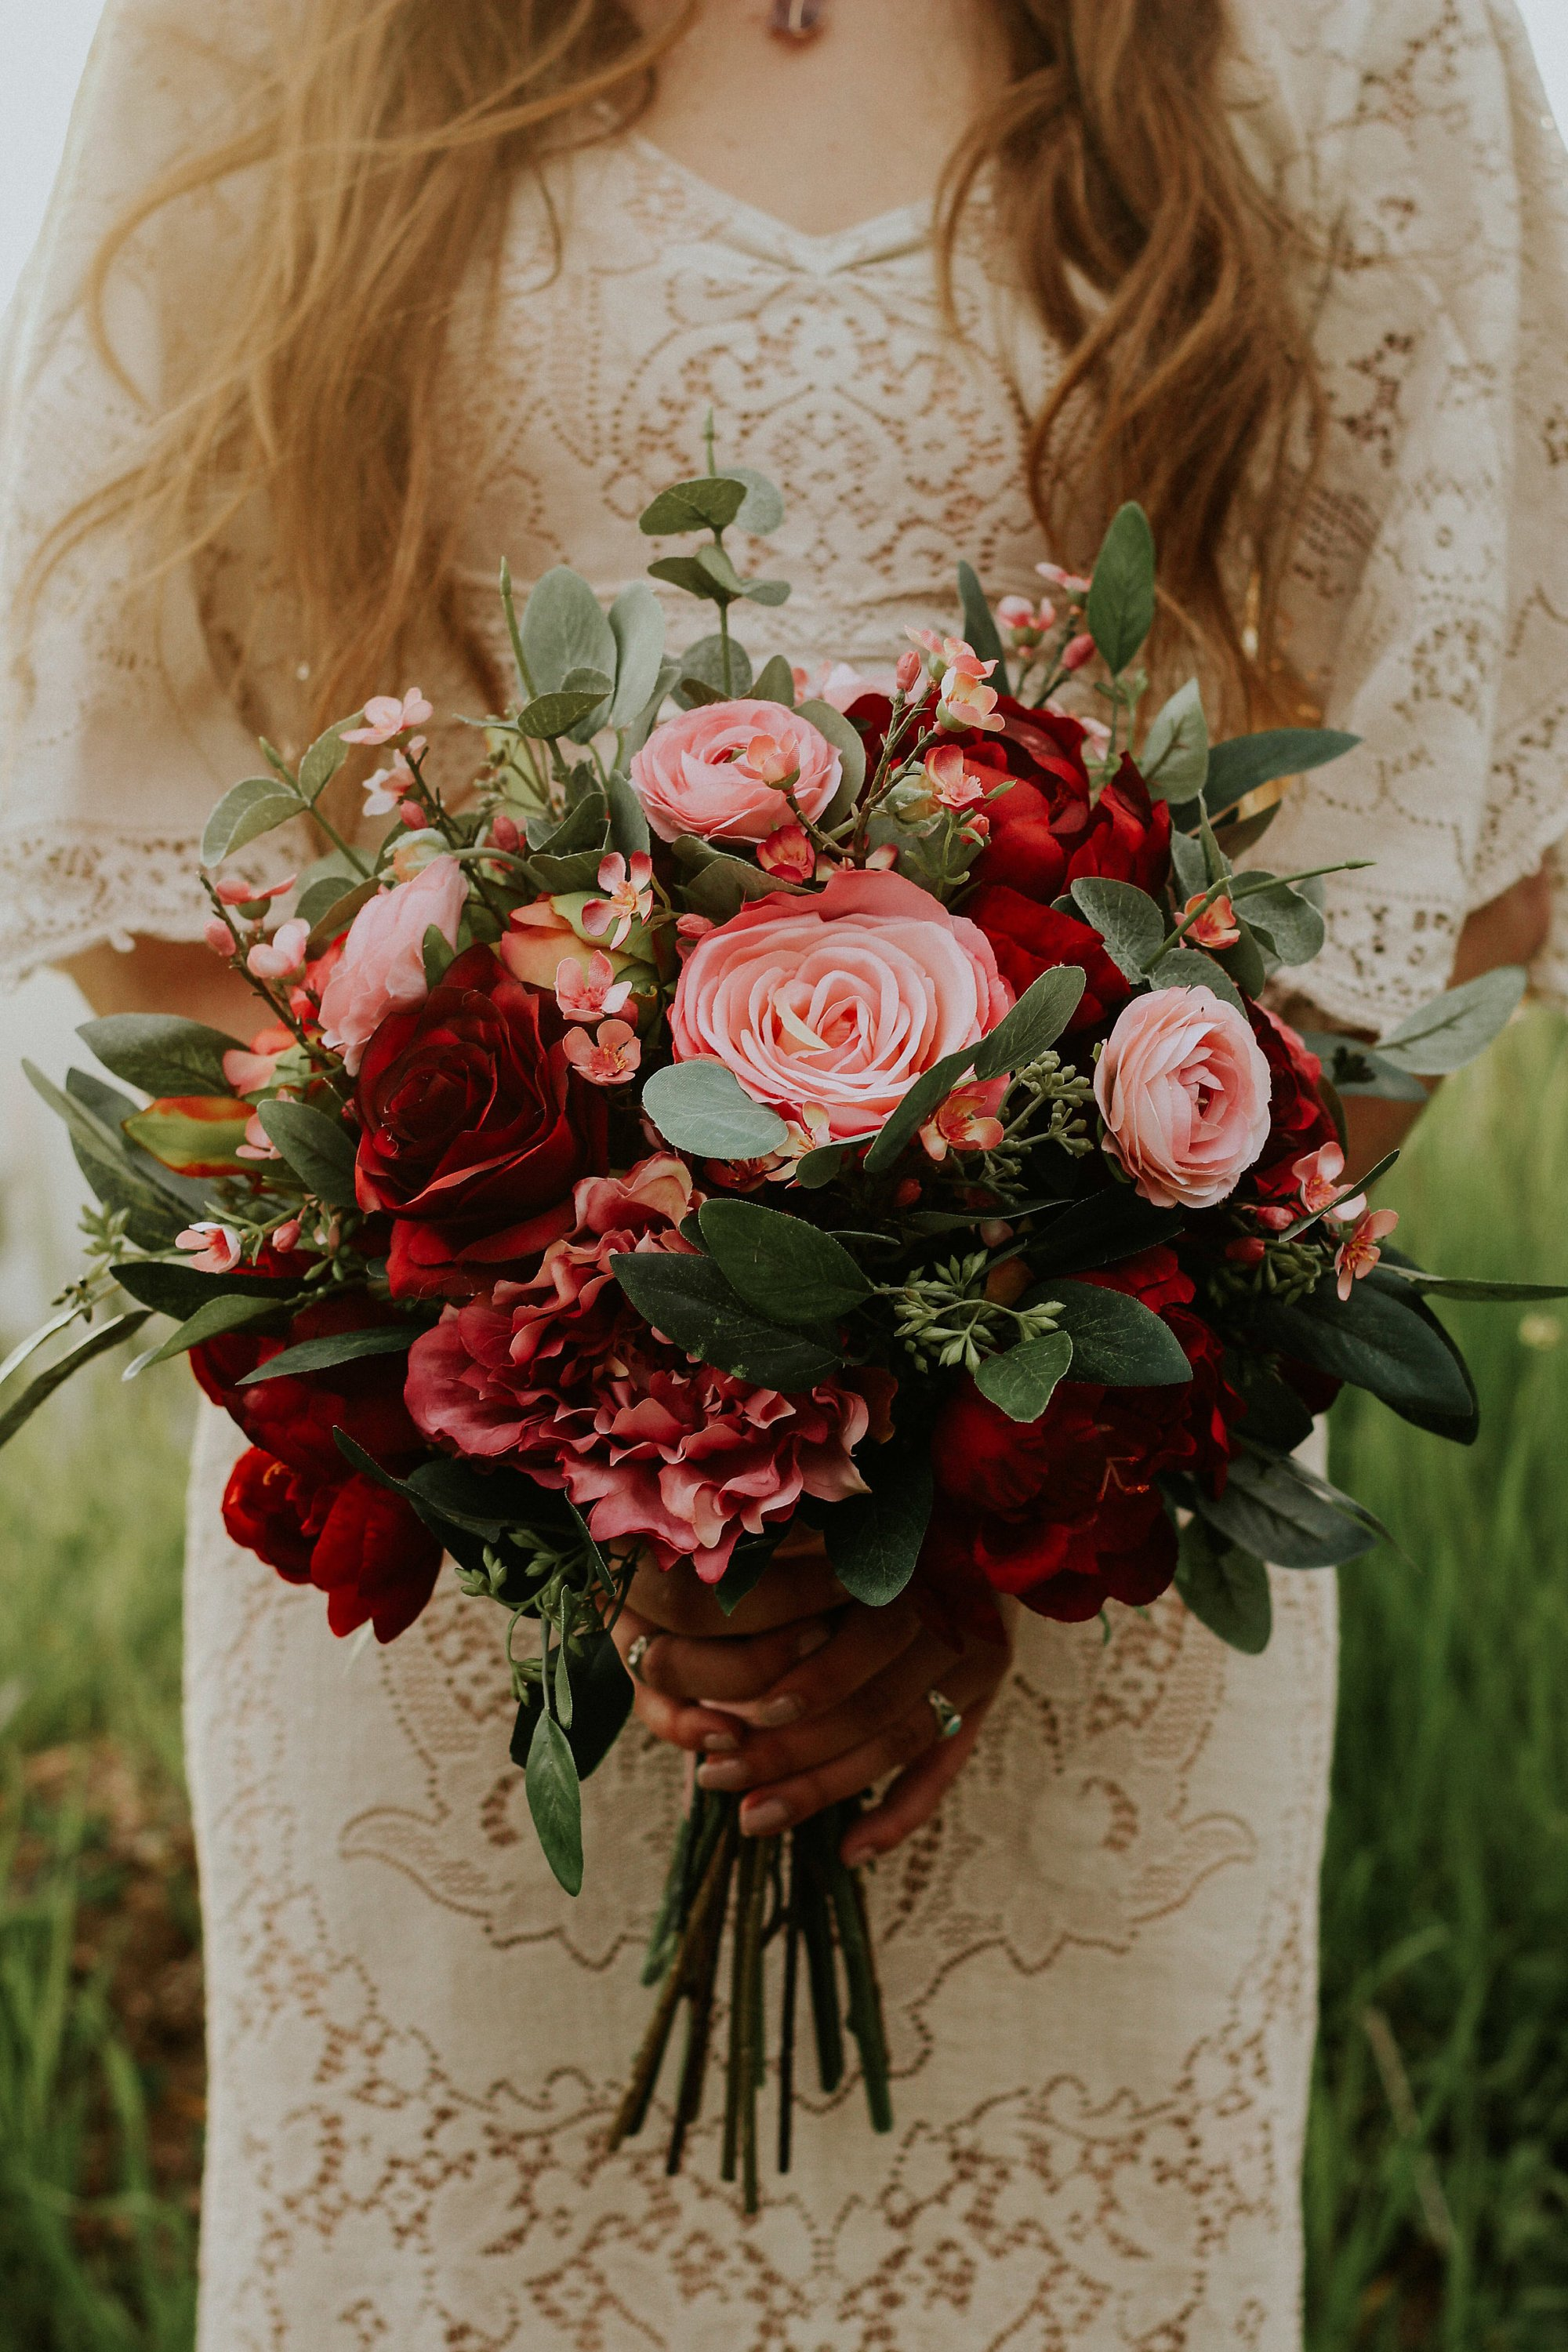 wedding bouquet, wedding flowers, boho bouquet, bridal bouquet, pink, red, burgundy, eucalyptus, wedding flower set, destination wedding.jpg